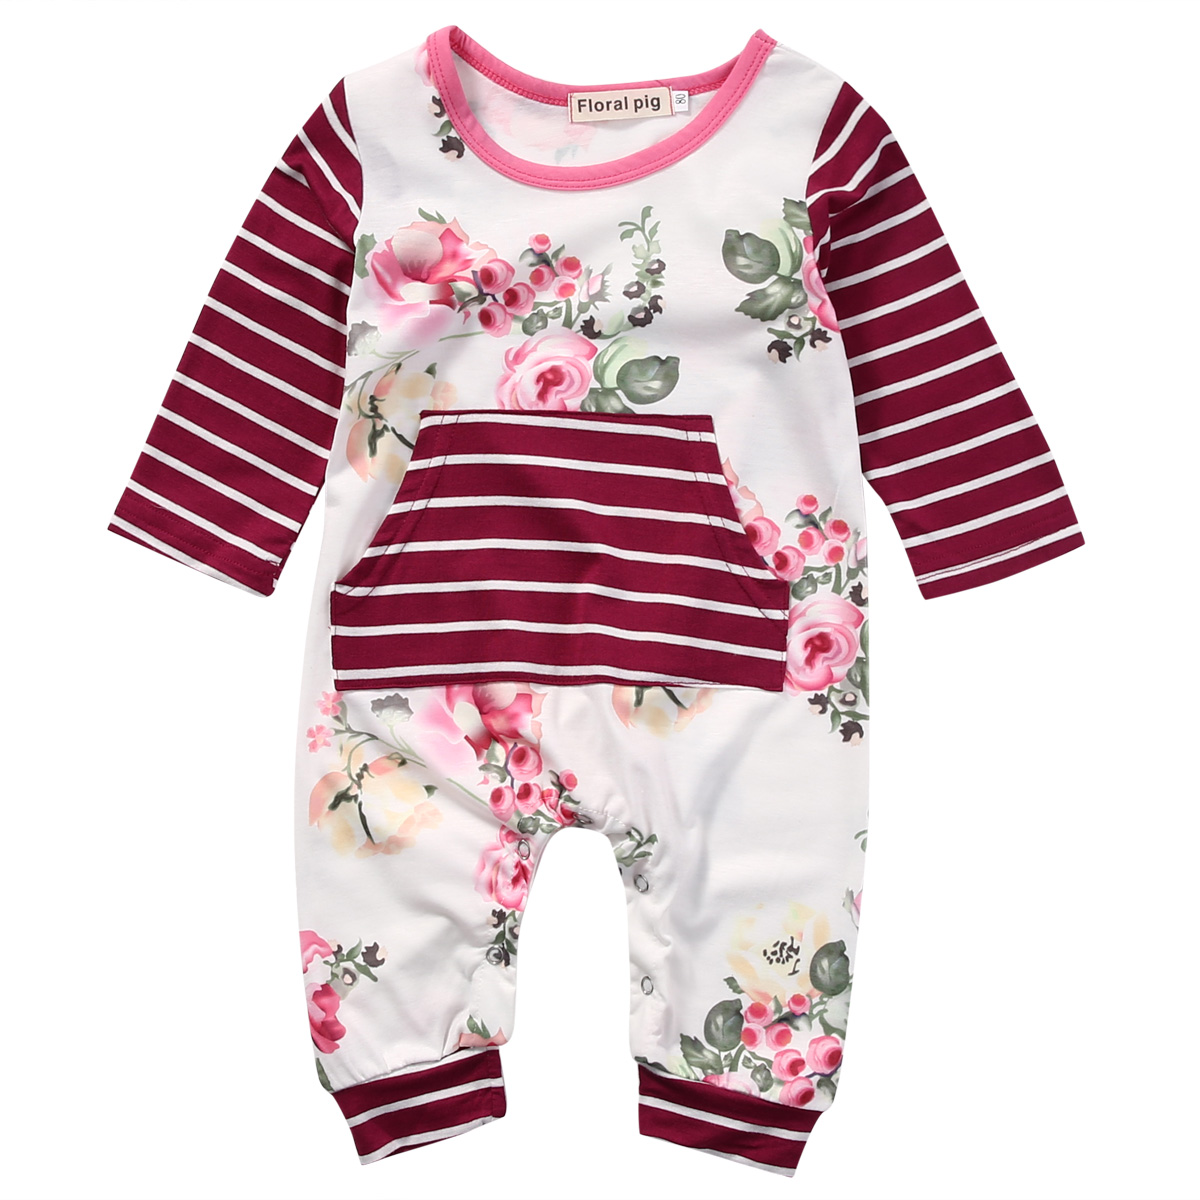 2017 New Floral Romper Infant Bebes Boy Girl Clothes Long Sleeve Newborn Jumpsuit One Pieces Outfit Tracksuit 0-18M newborn infant warm baby boy girl clothes cotton long sleeve hooded romper jumpsuit one pieces outfit tracksuit 0 24m